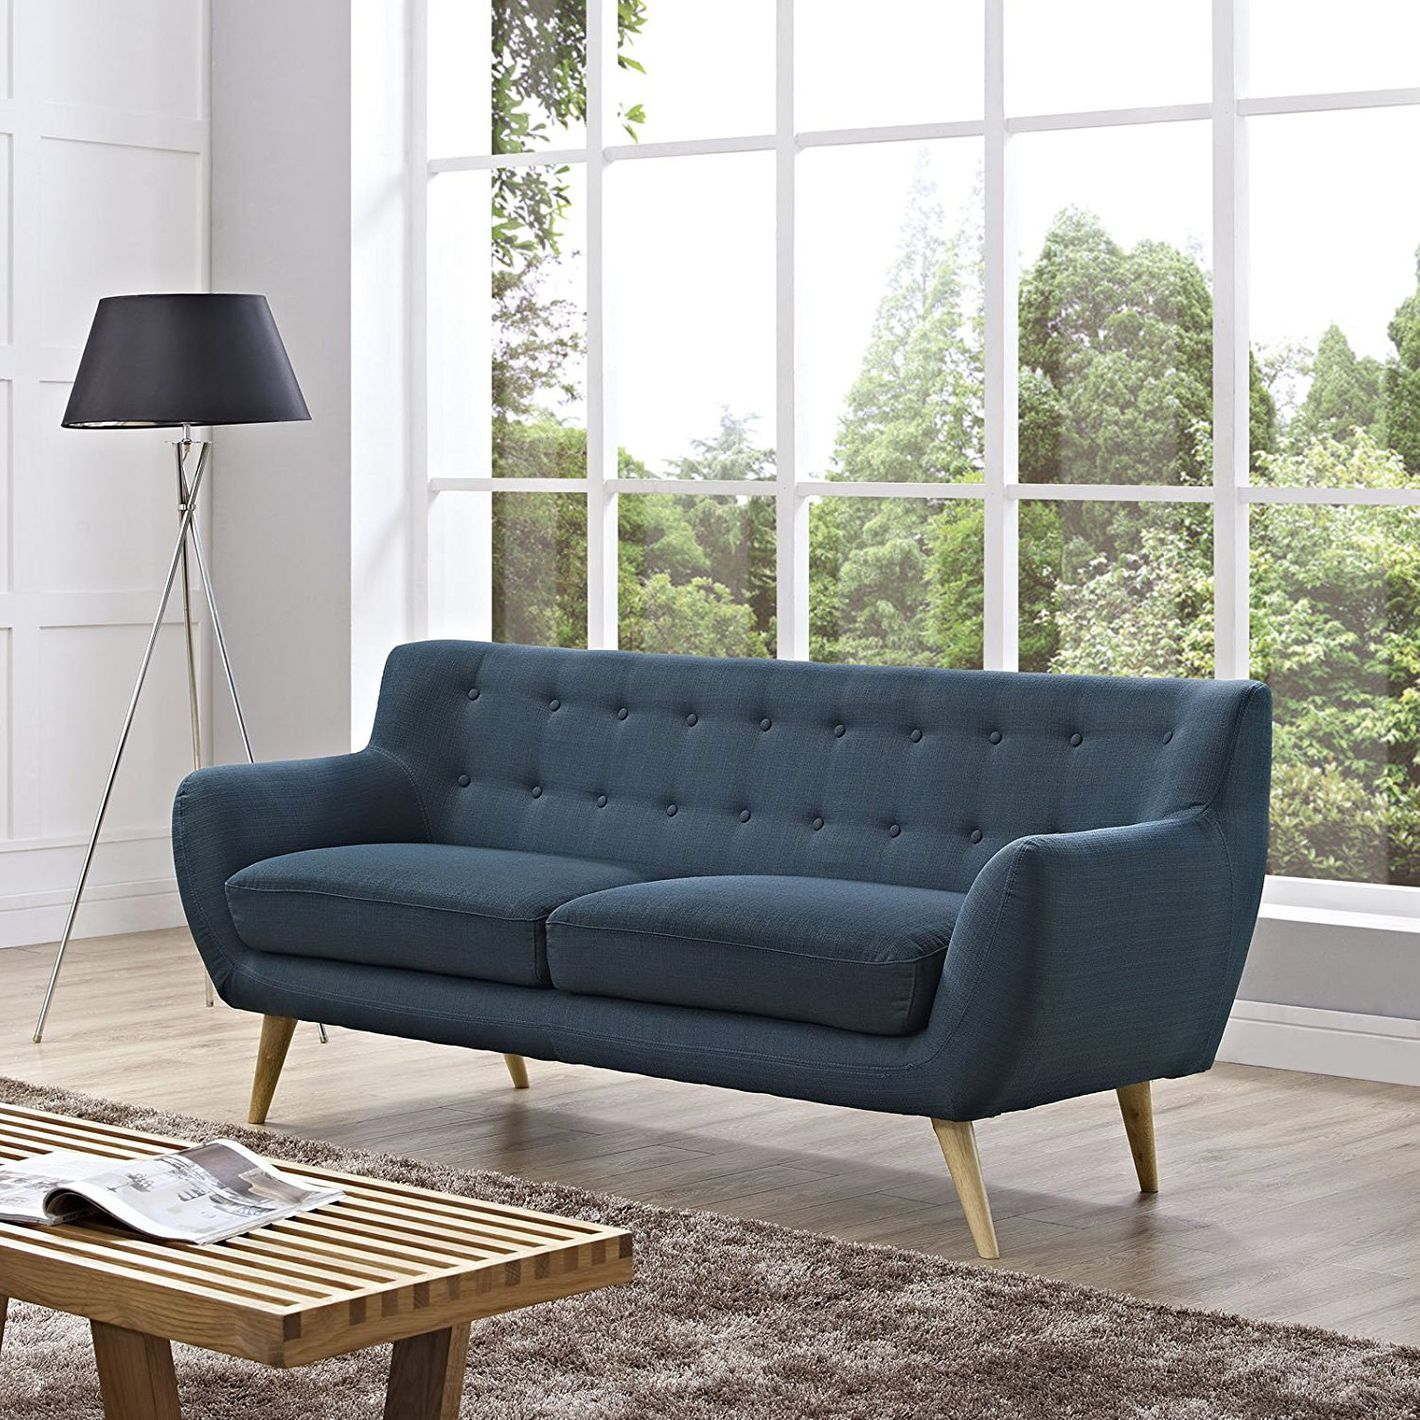 The Best Sofas Under $500. u201c : sectionals under 500 - Sectionals, Sofas & Couches